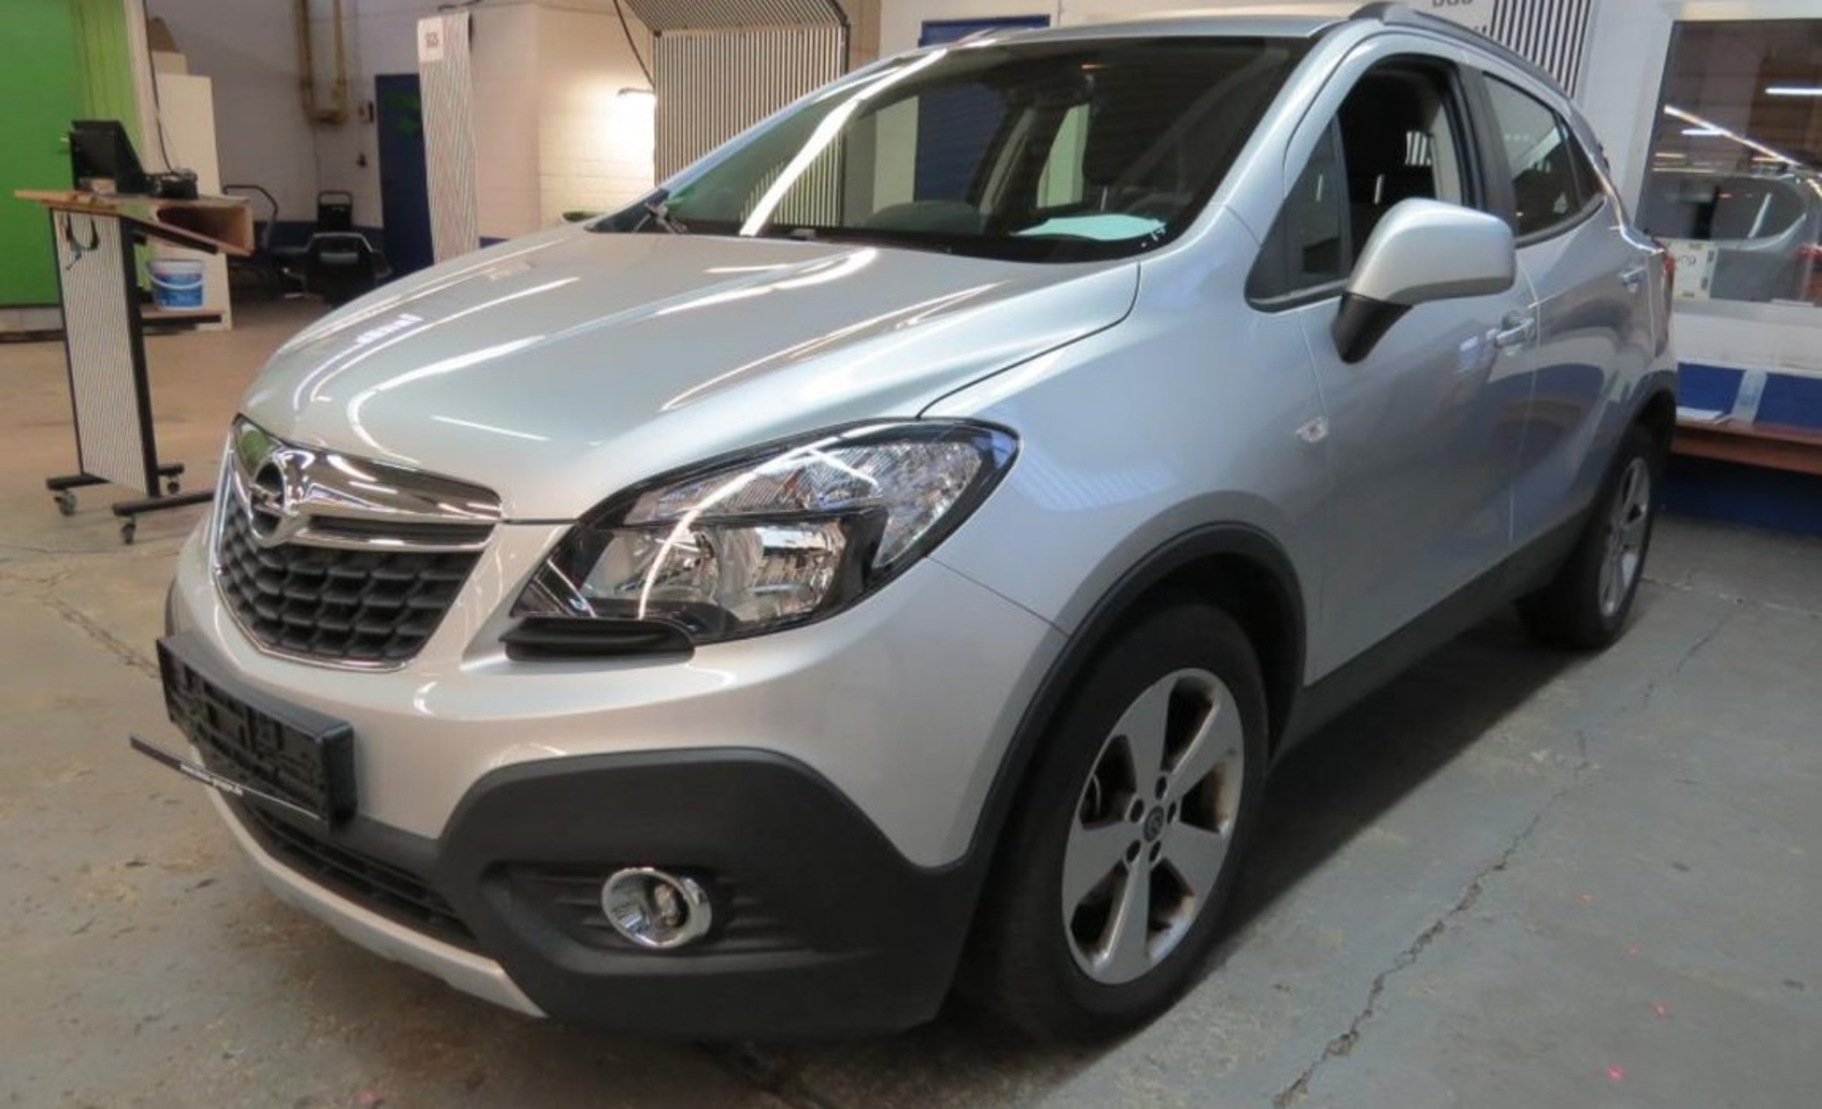 Opel Mokka 1.4 Turbo ecoFLEX Edition (540297) detail1